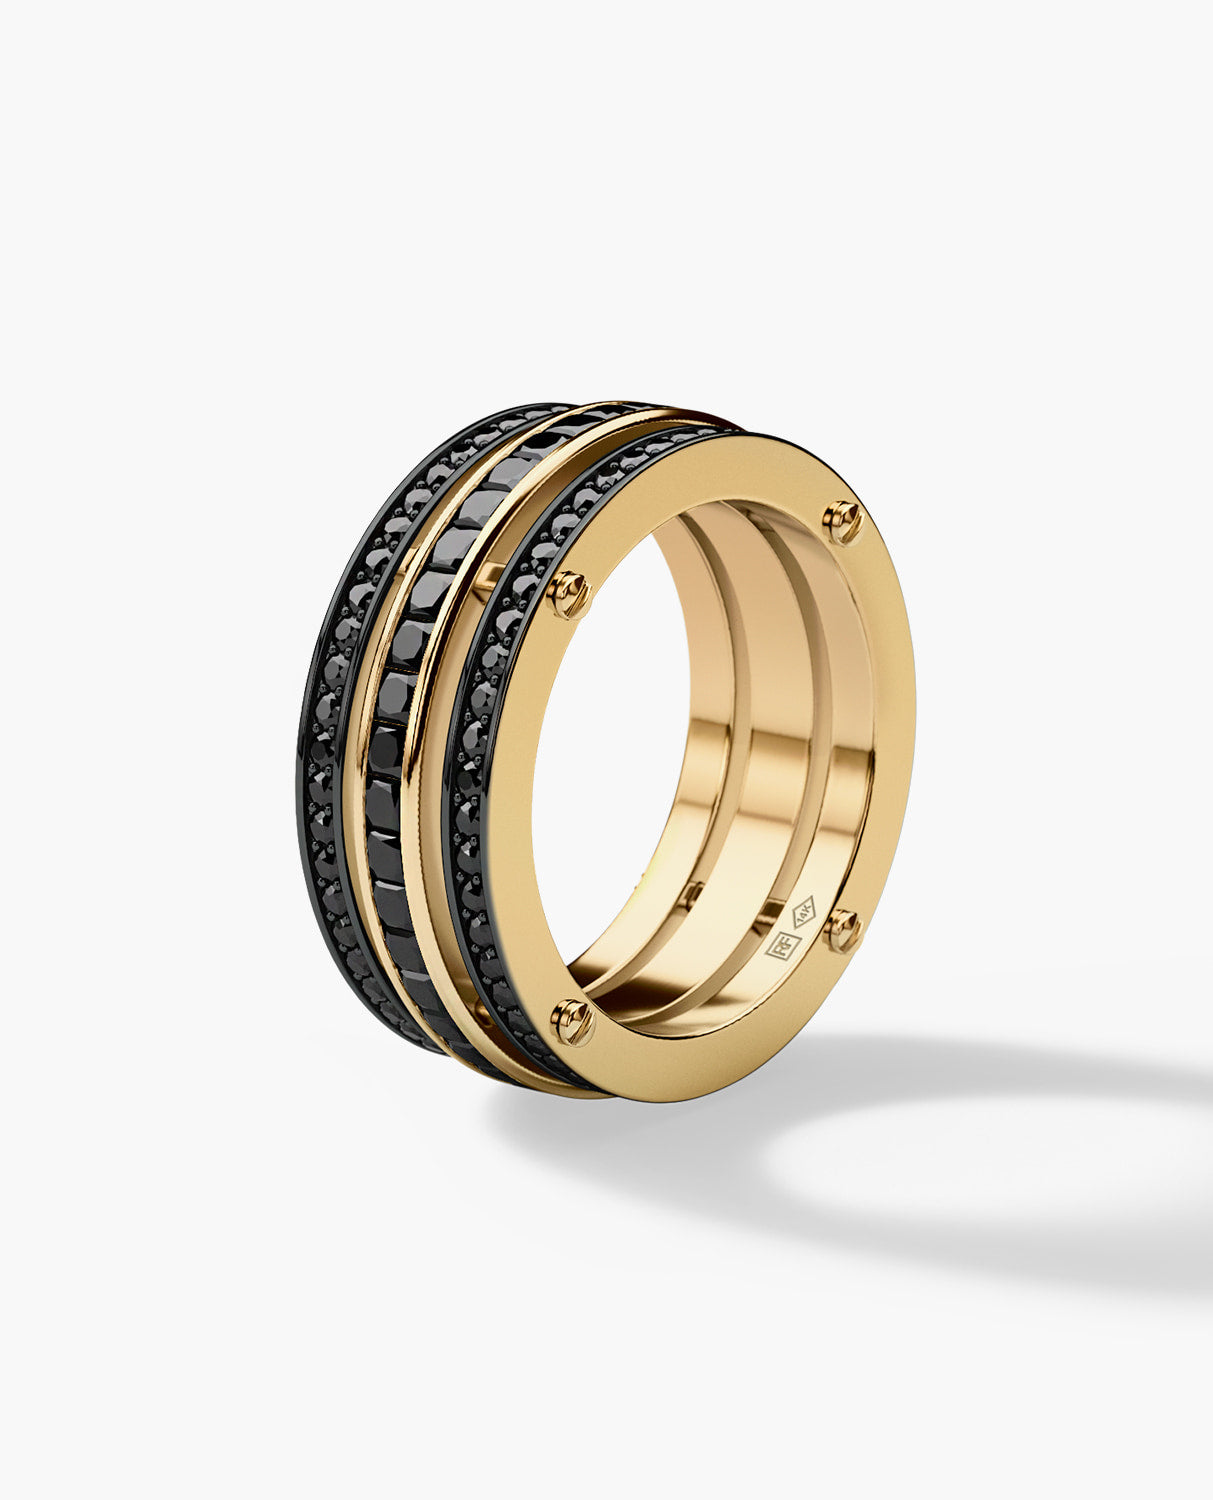 BREWER Mens Gold Wedding Band with 3.10ct Black Diamonds